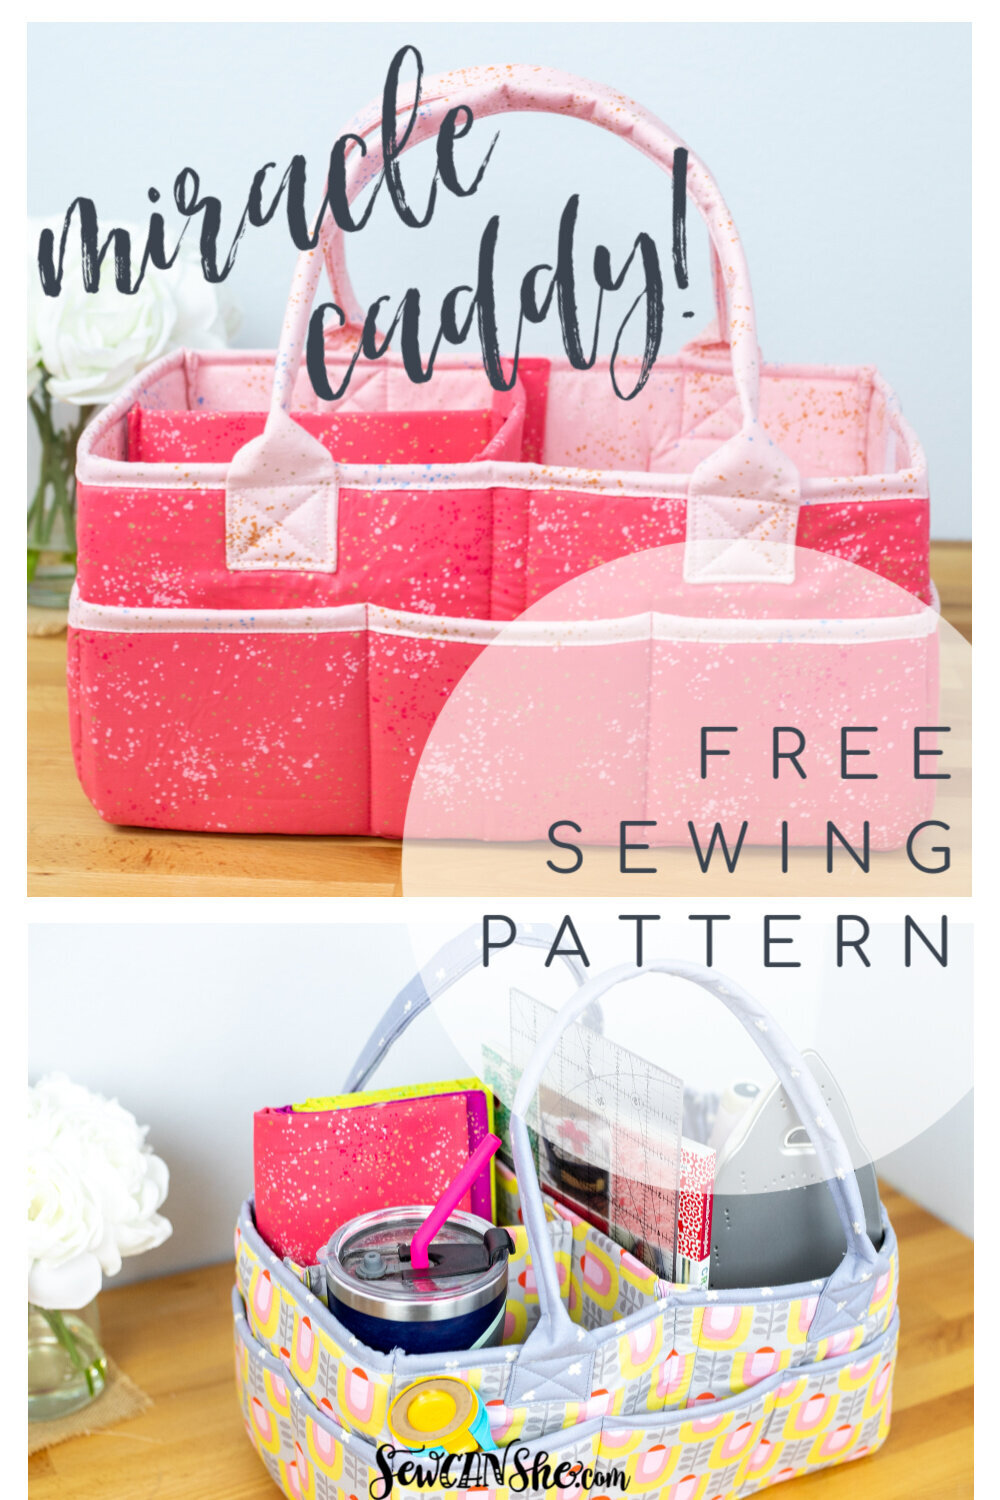 miracle+caddy+free+sewing+pattern.jpg